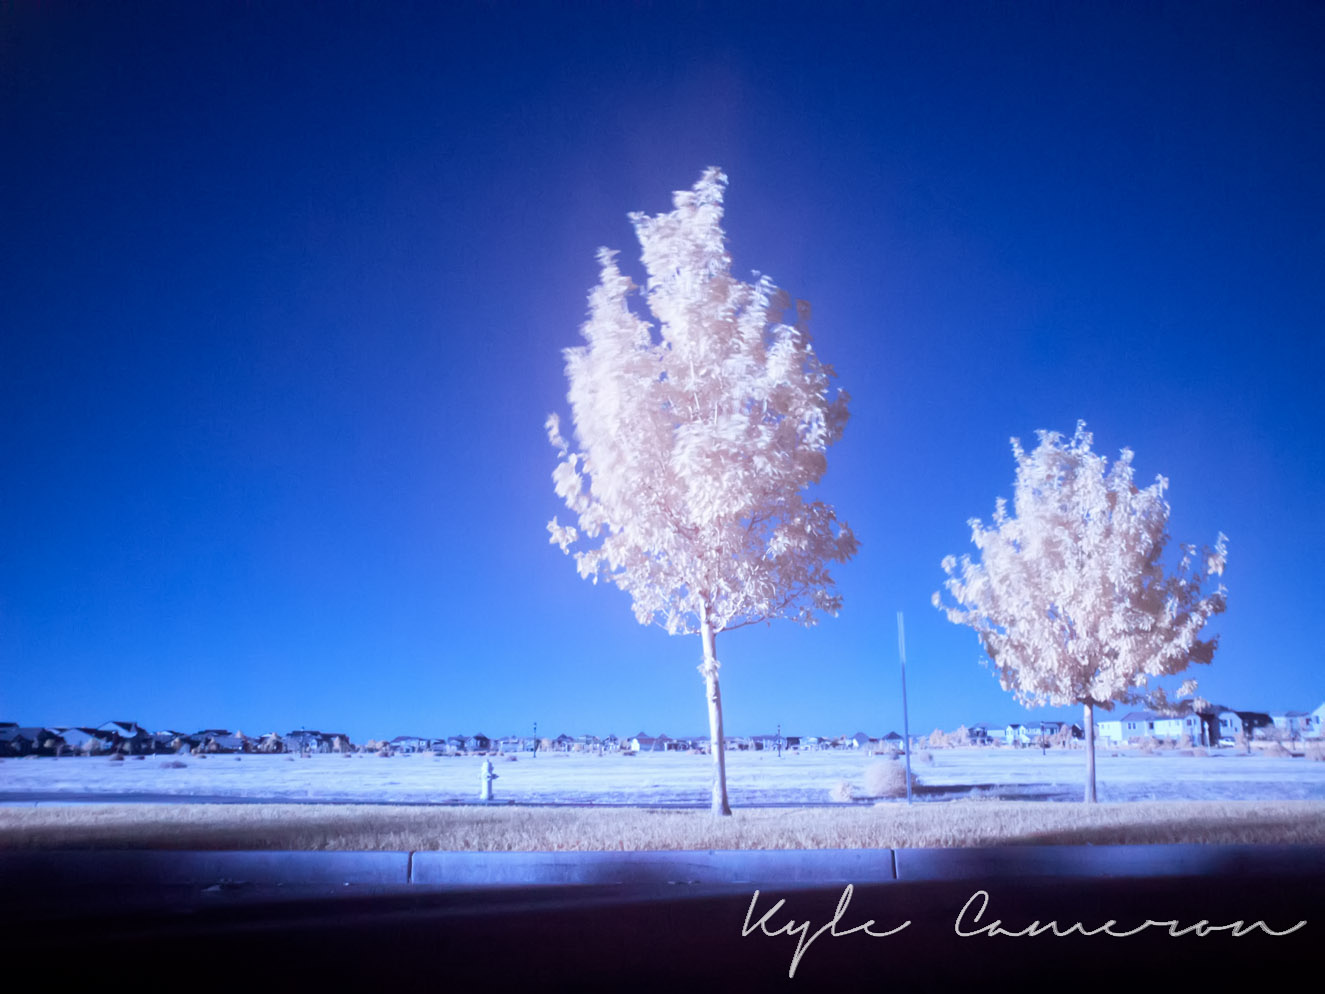 Infrared 1500x994 70 quality (5 of 10).jpg